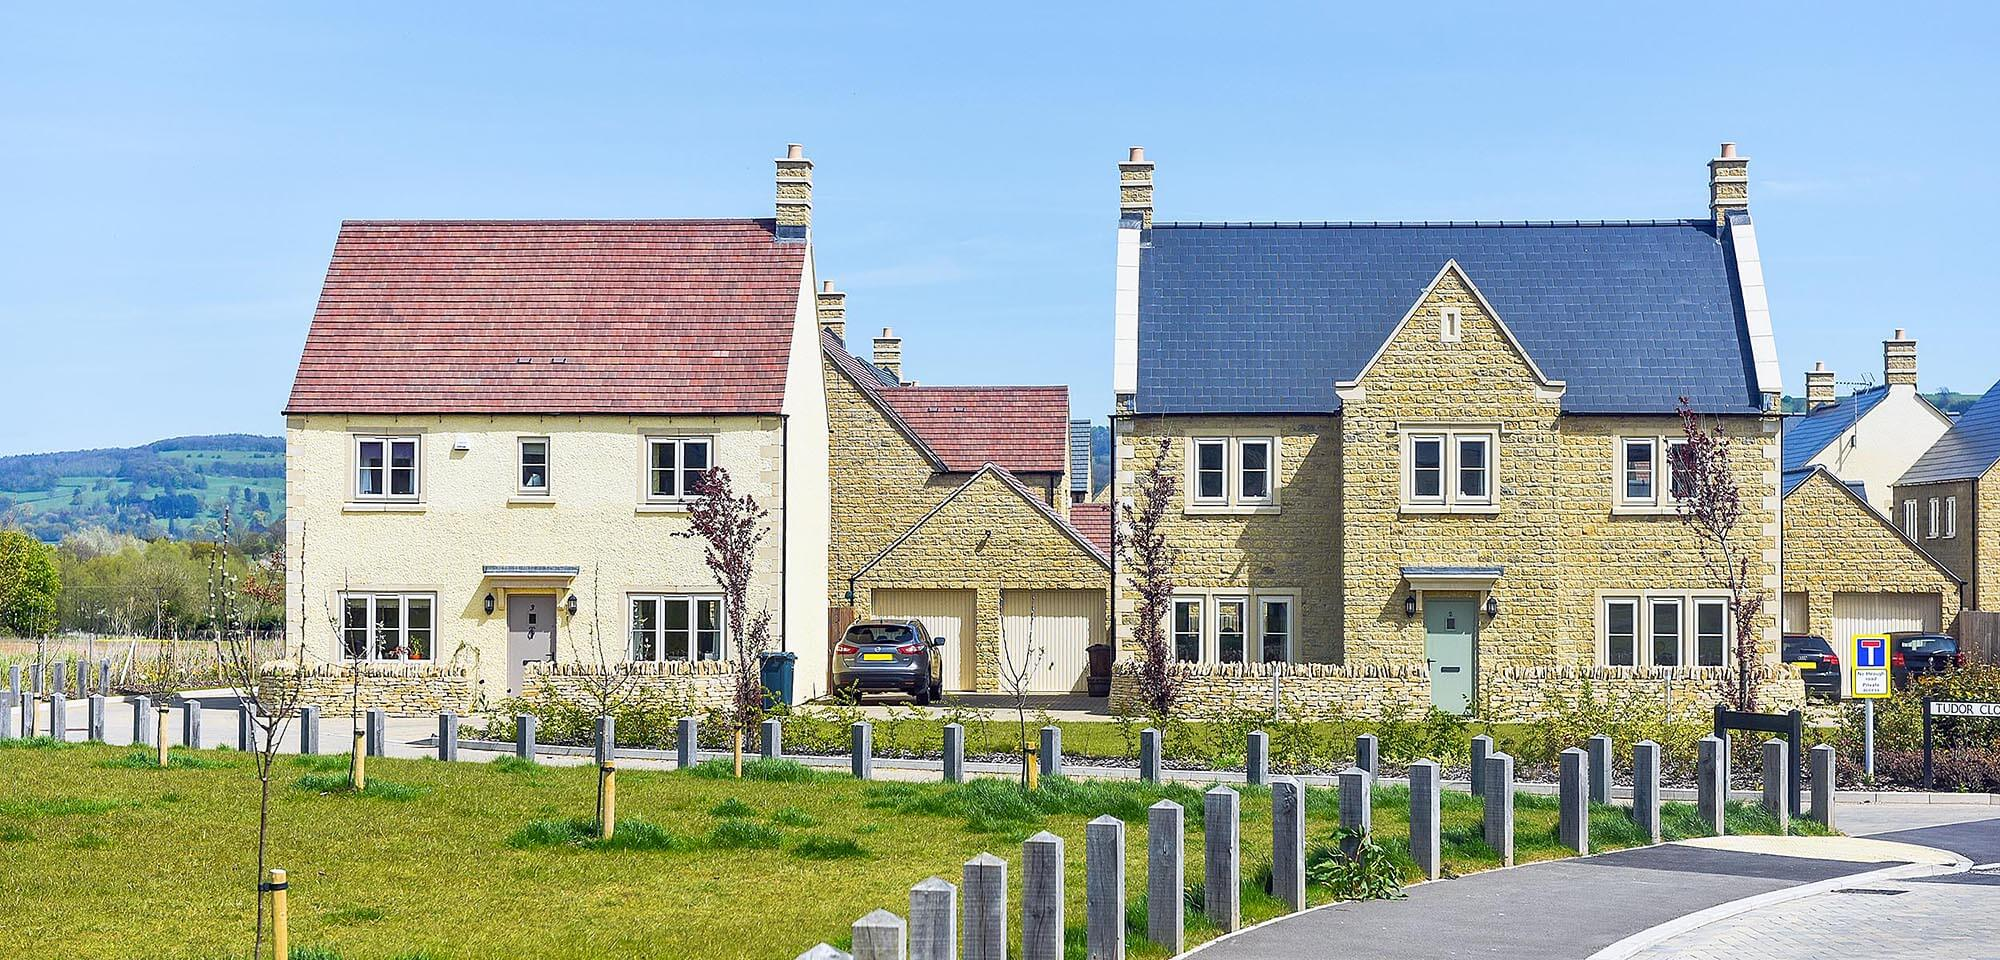 Sheltered housing schemes